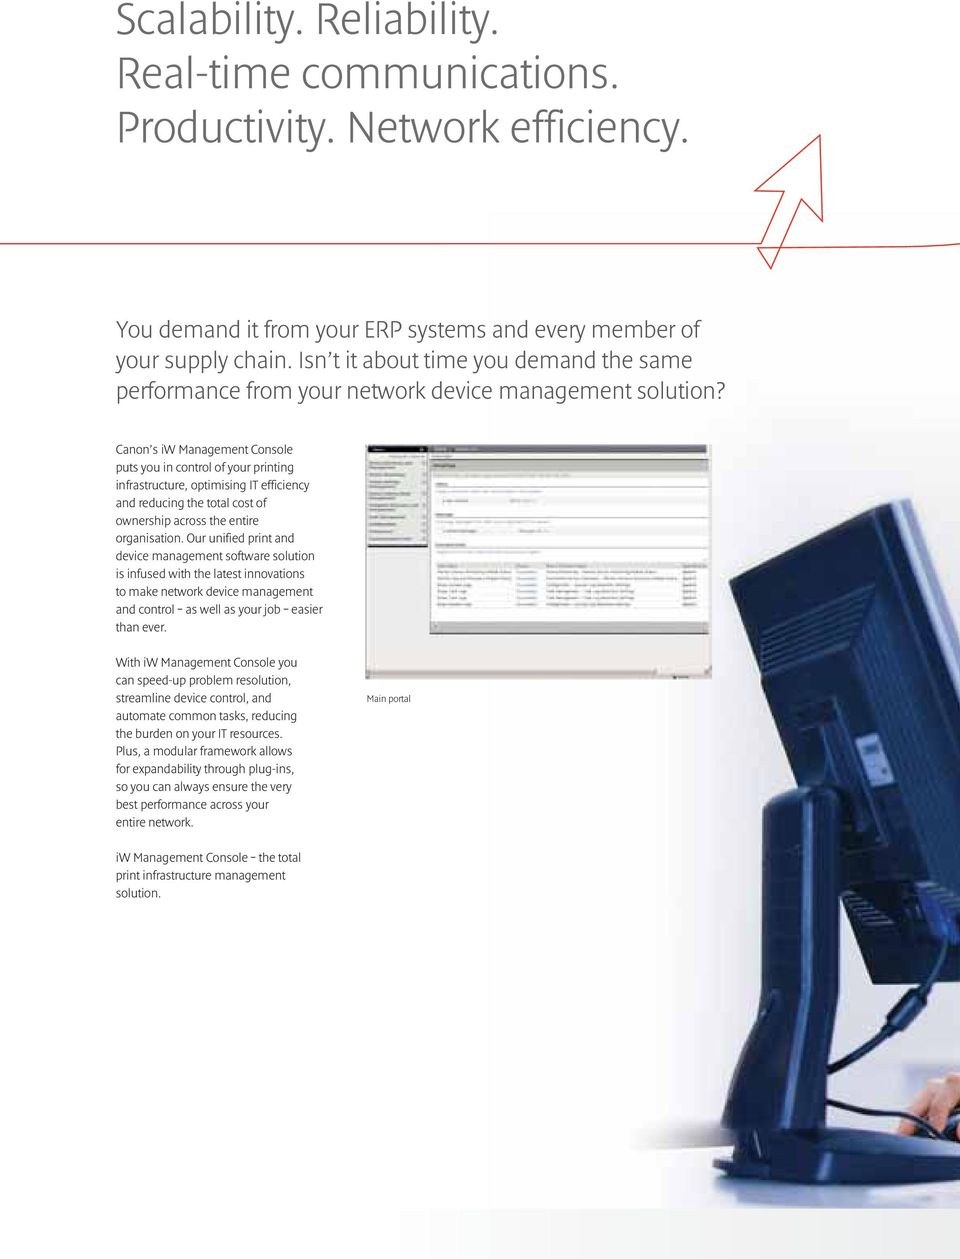 Canon s iw Management Console puts you in control of your printing infrastructure, optimising IT efficiency and reducing the total cost of ownership across the entire organisation.